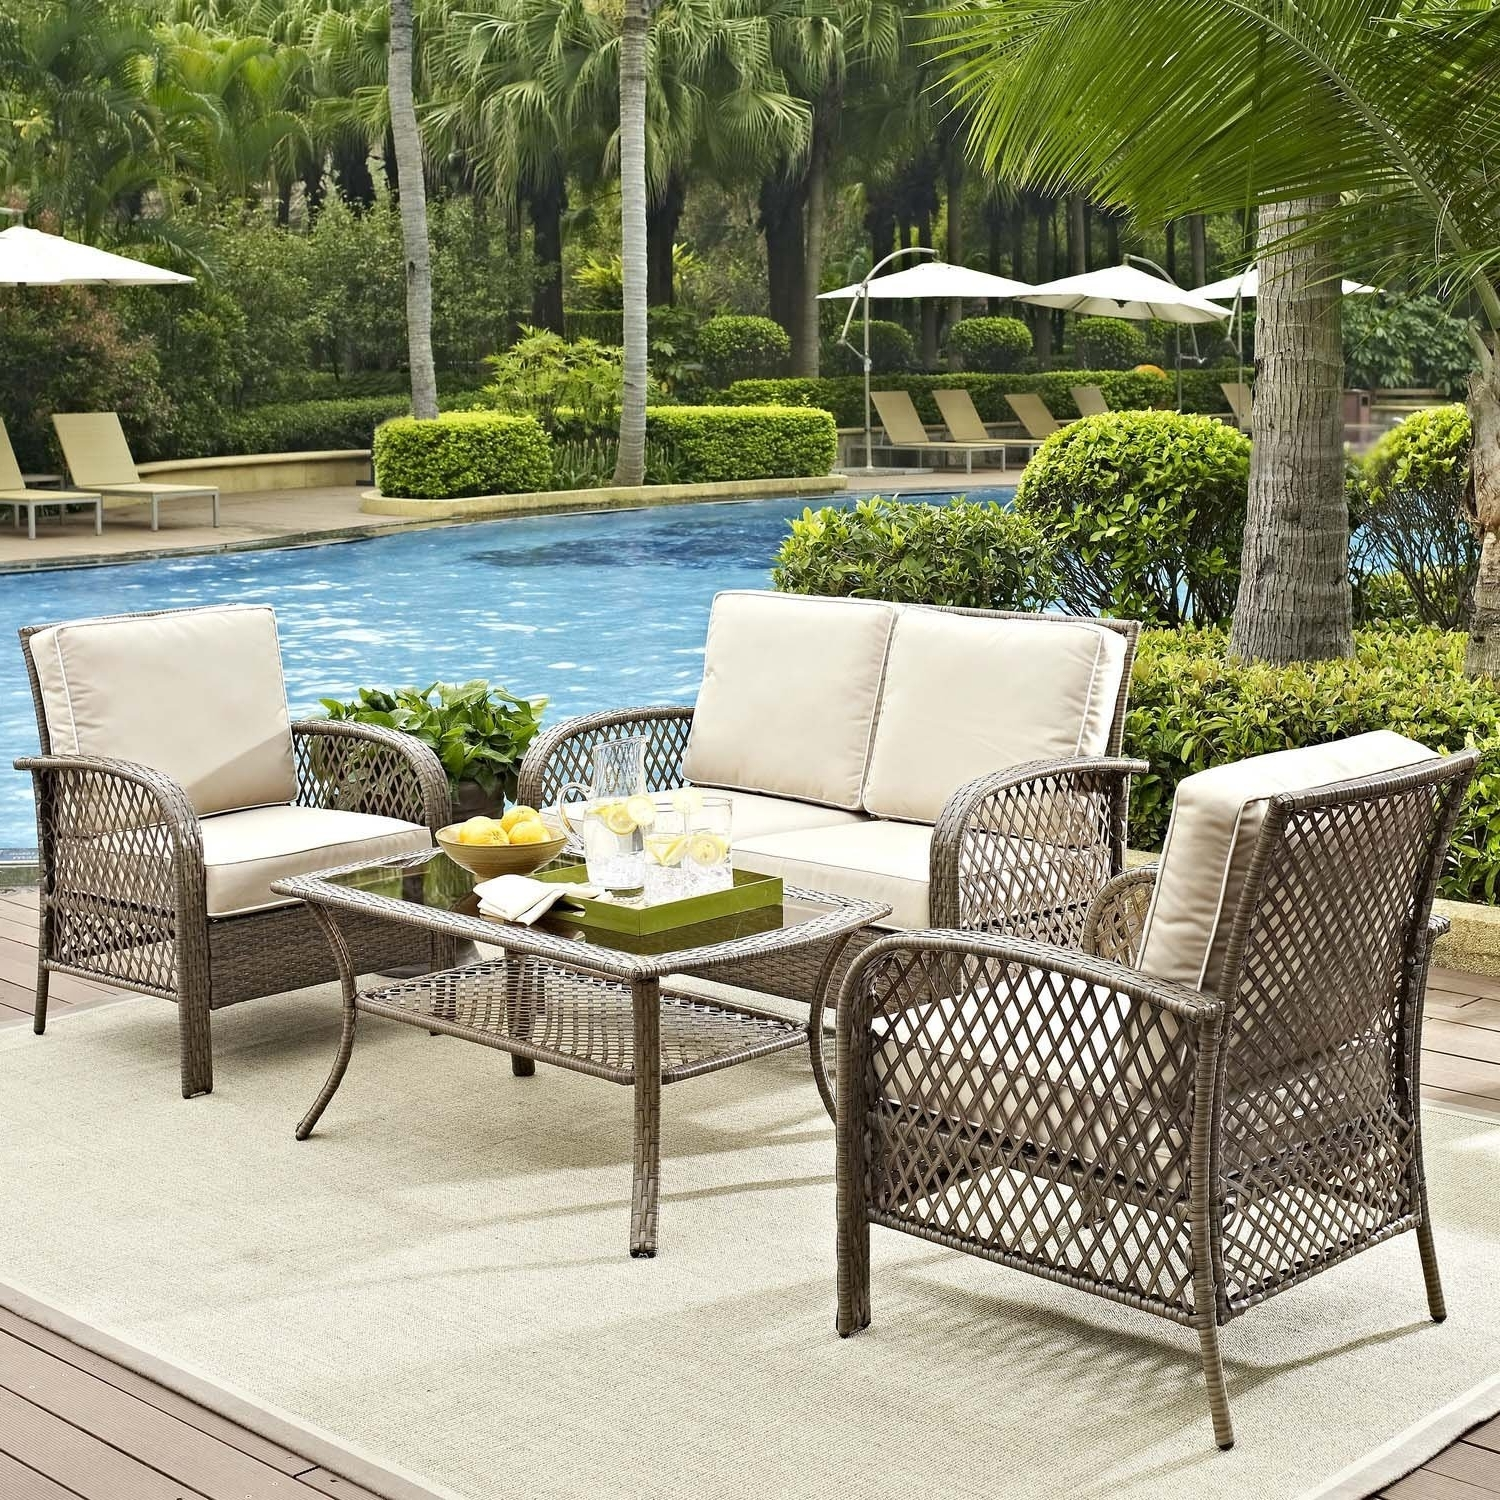 Wayfair Outdoor Patio Conversation Sets Regarding Well Known Breathtaking Wayfair Patio Furniture Sets Gallery Best Image From (View 11 of 15)